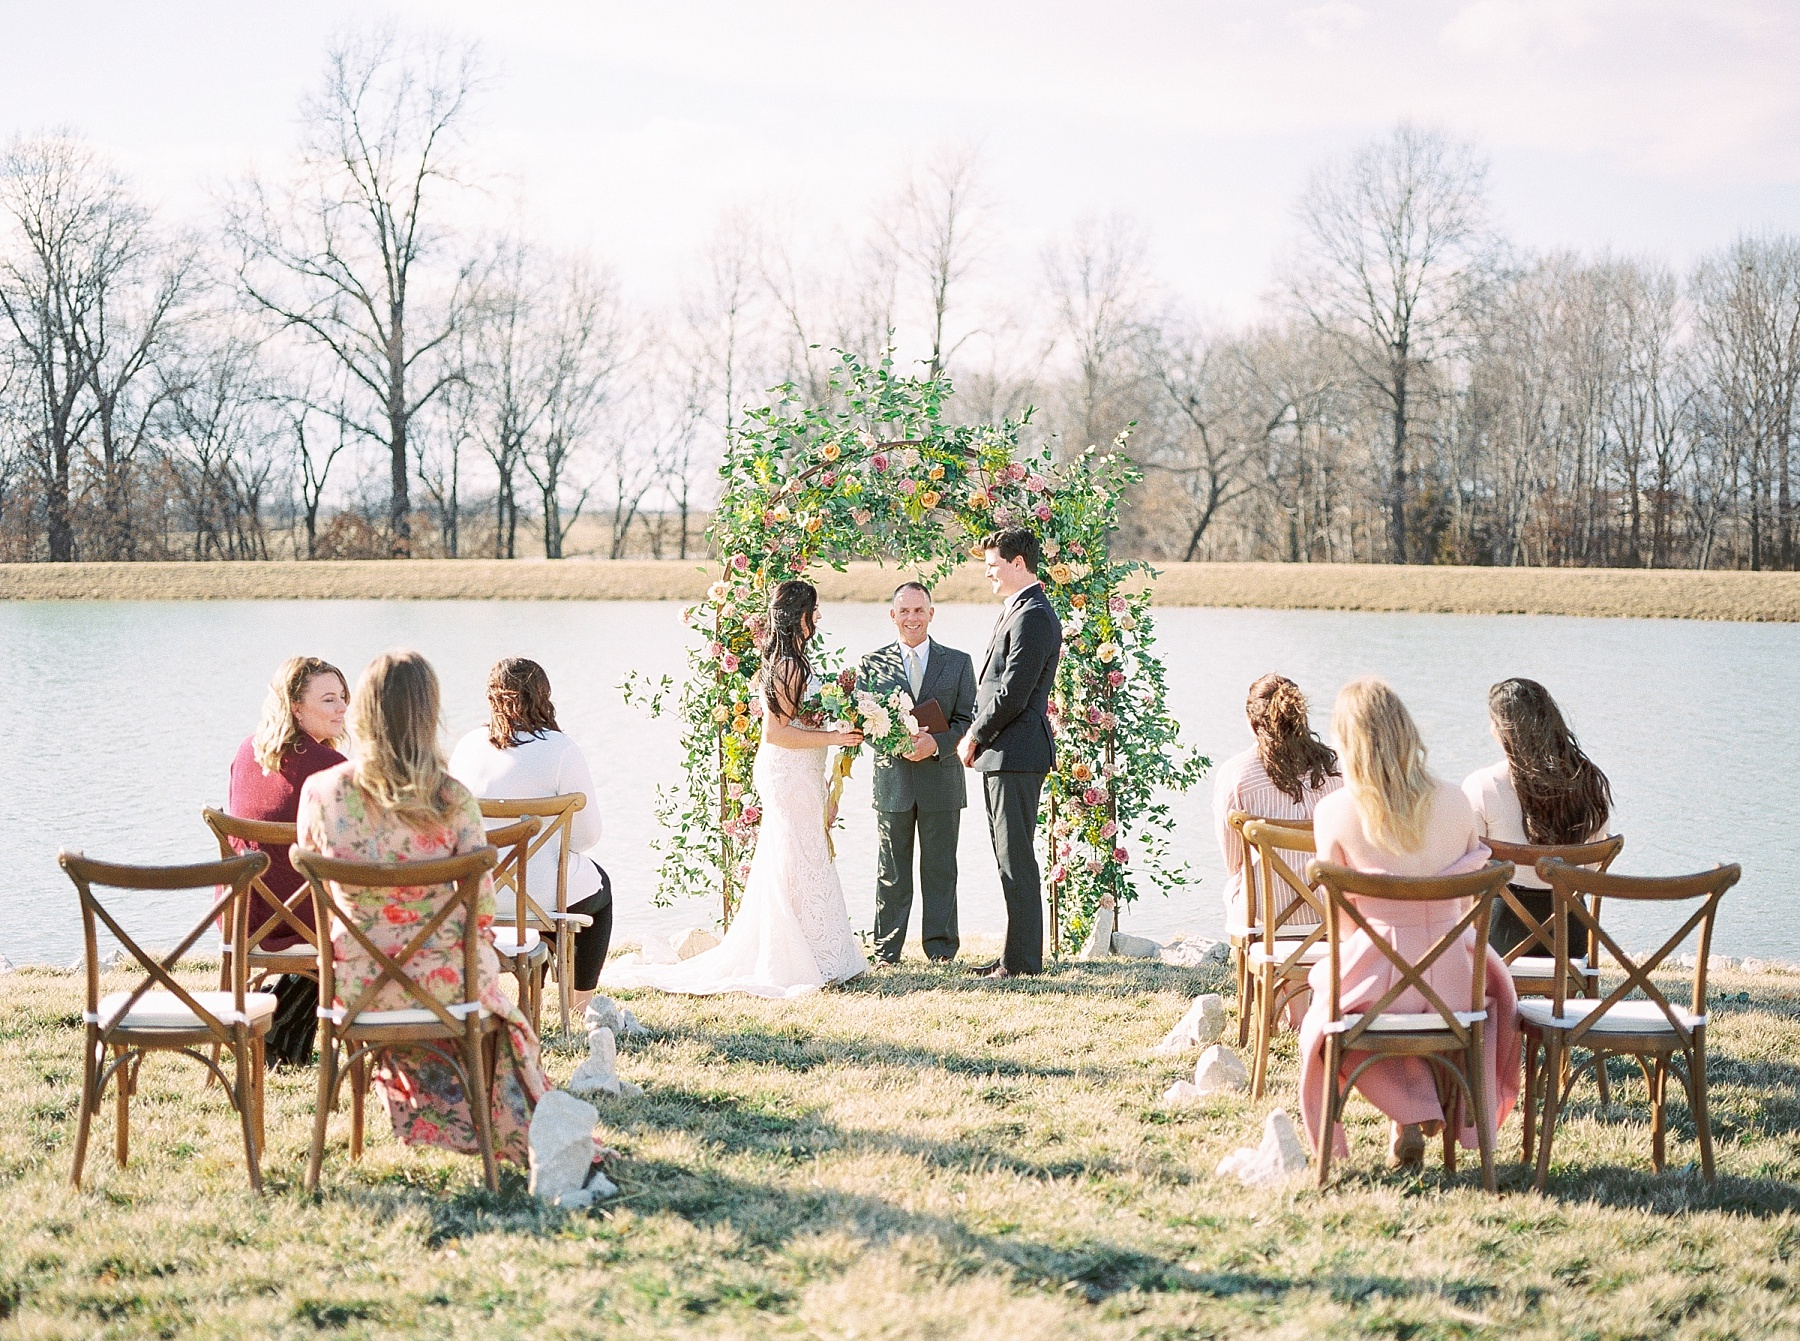 Lakeside Sunset Wedding with Magnificent Abundance of Blooms at Emerson Fields by Kelsi Kliethermes Photography Best Missouri and Maui Wedding Photographer_0010.jpg